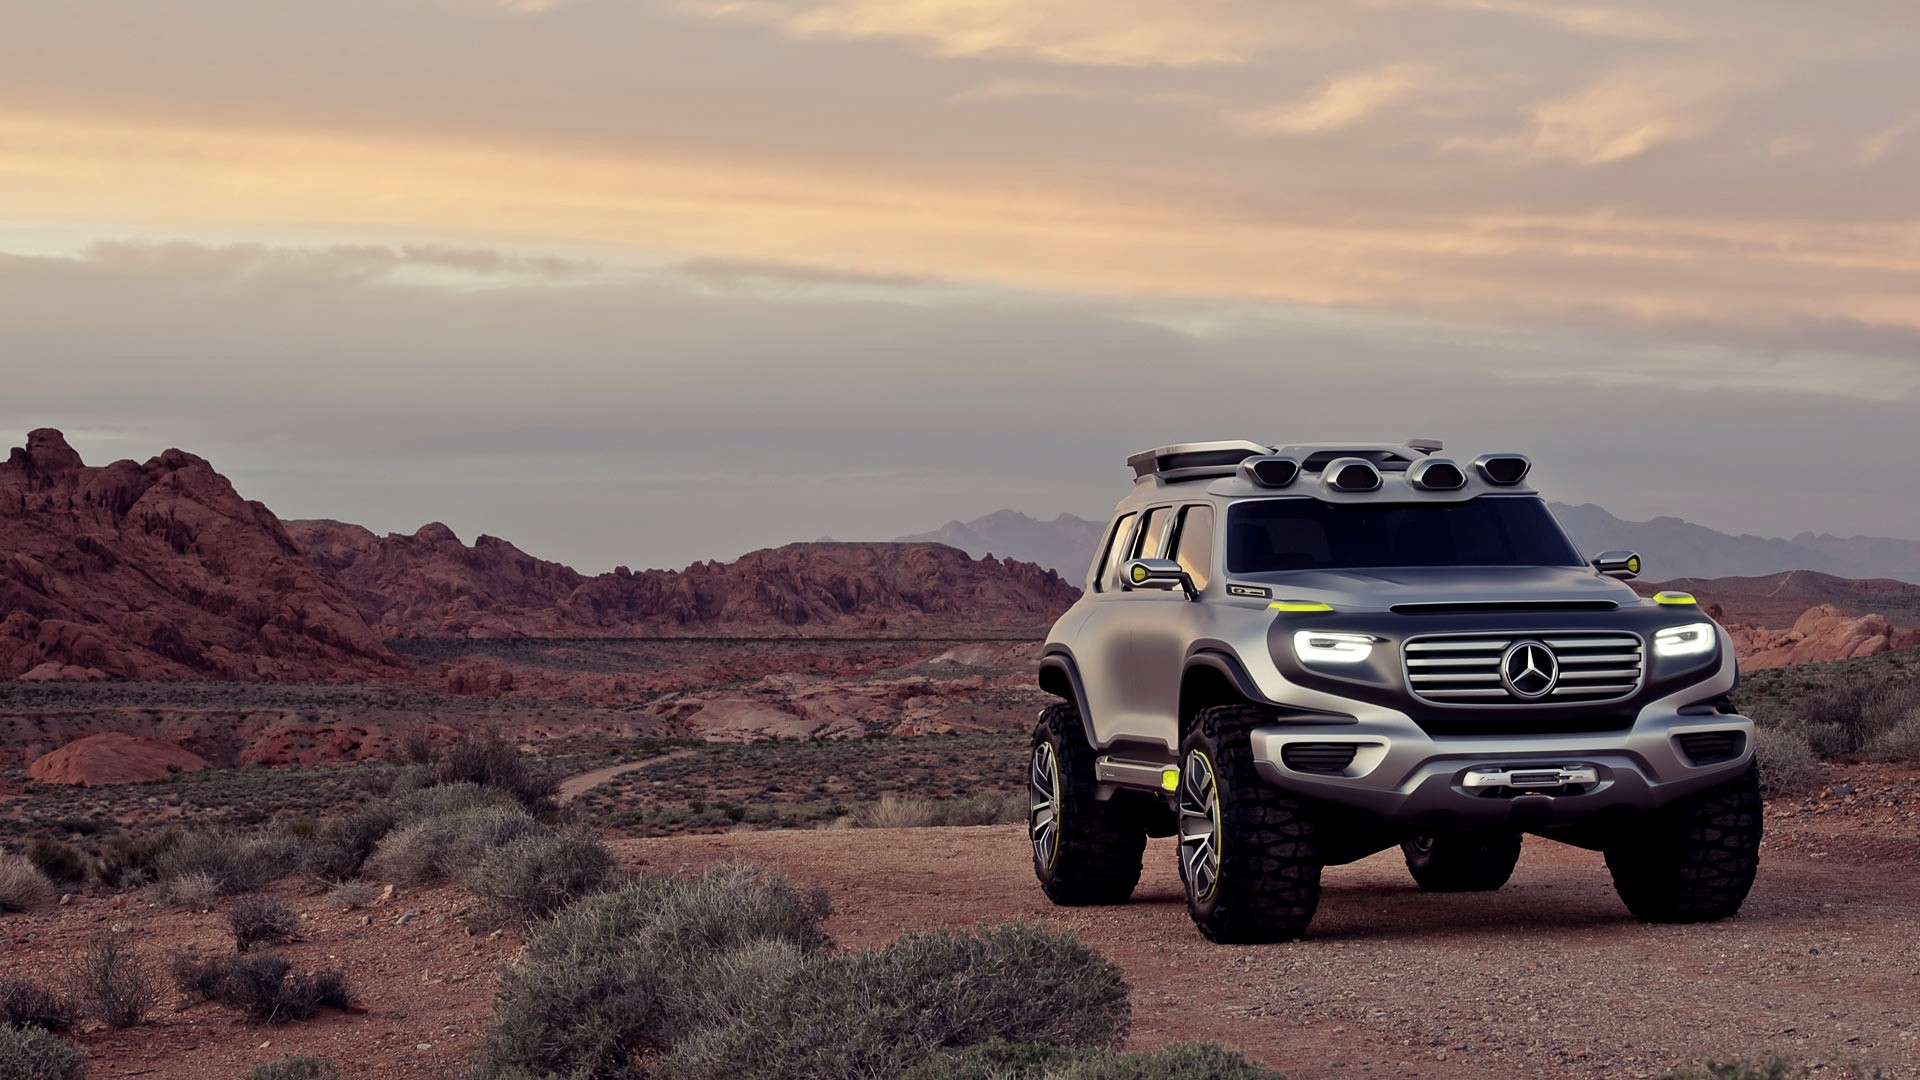 Free Download Cars Desert Concept Cars Suv Offroad Mercedes Benz